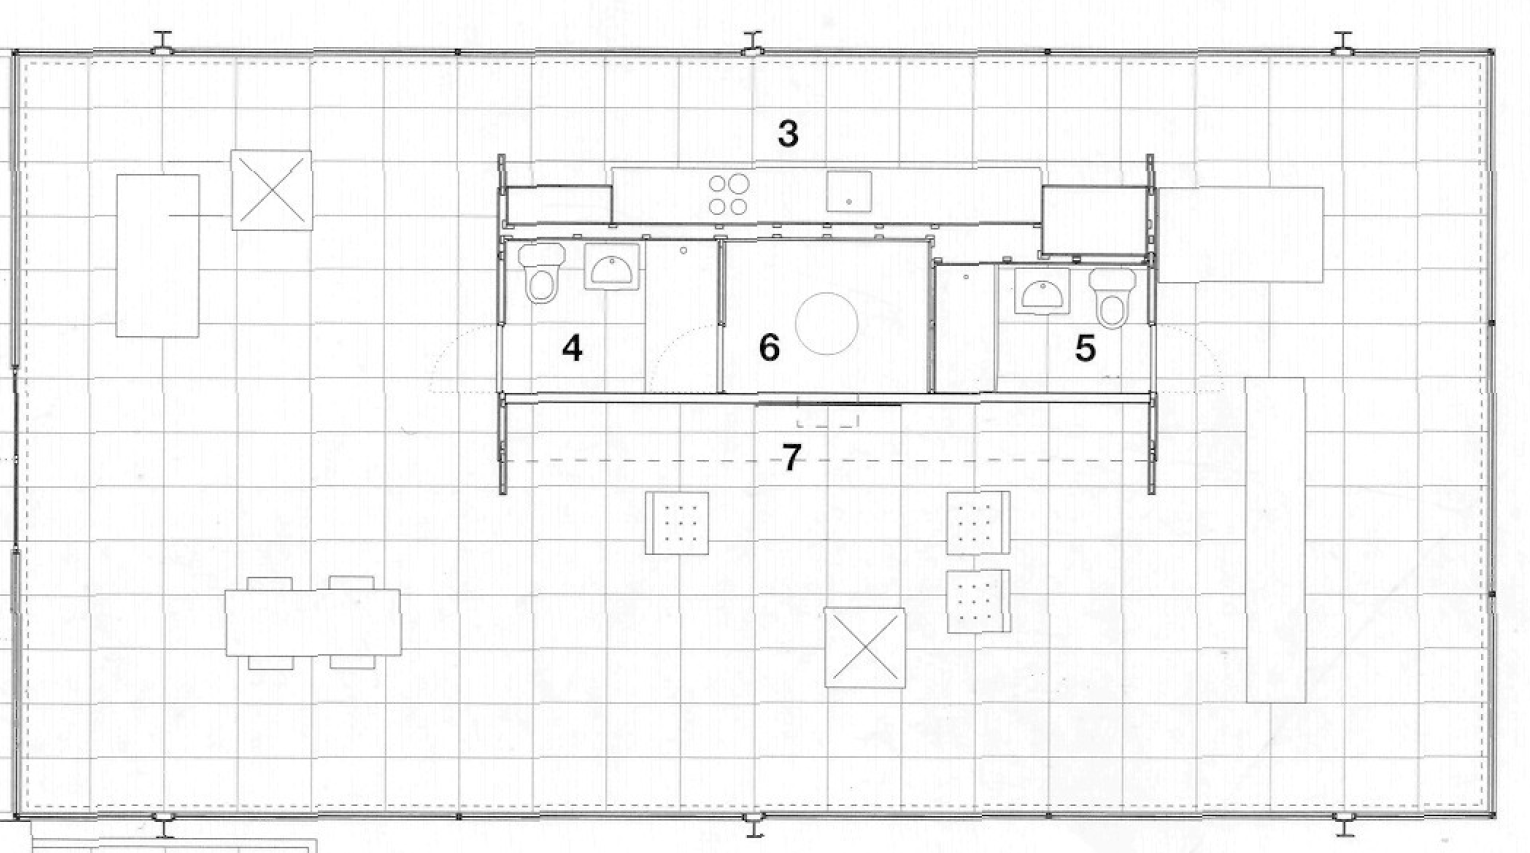 how to add a new floor plan in revit